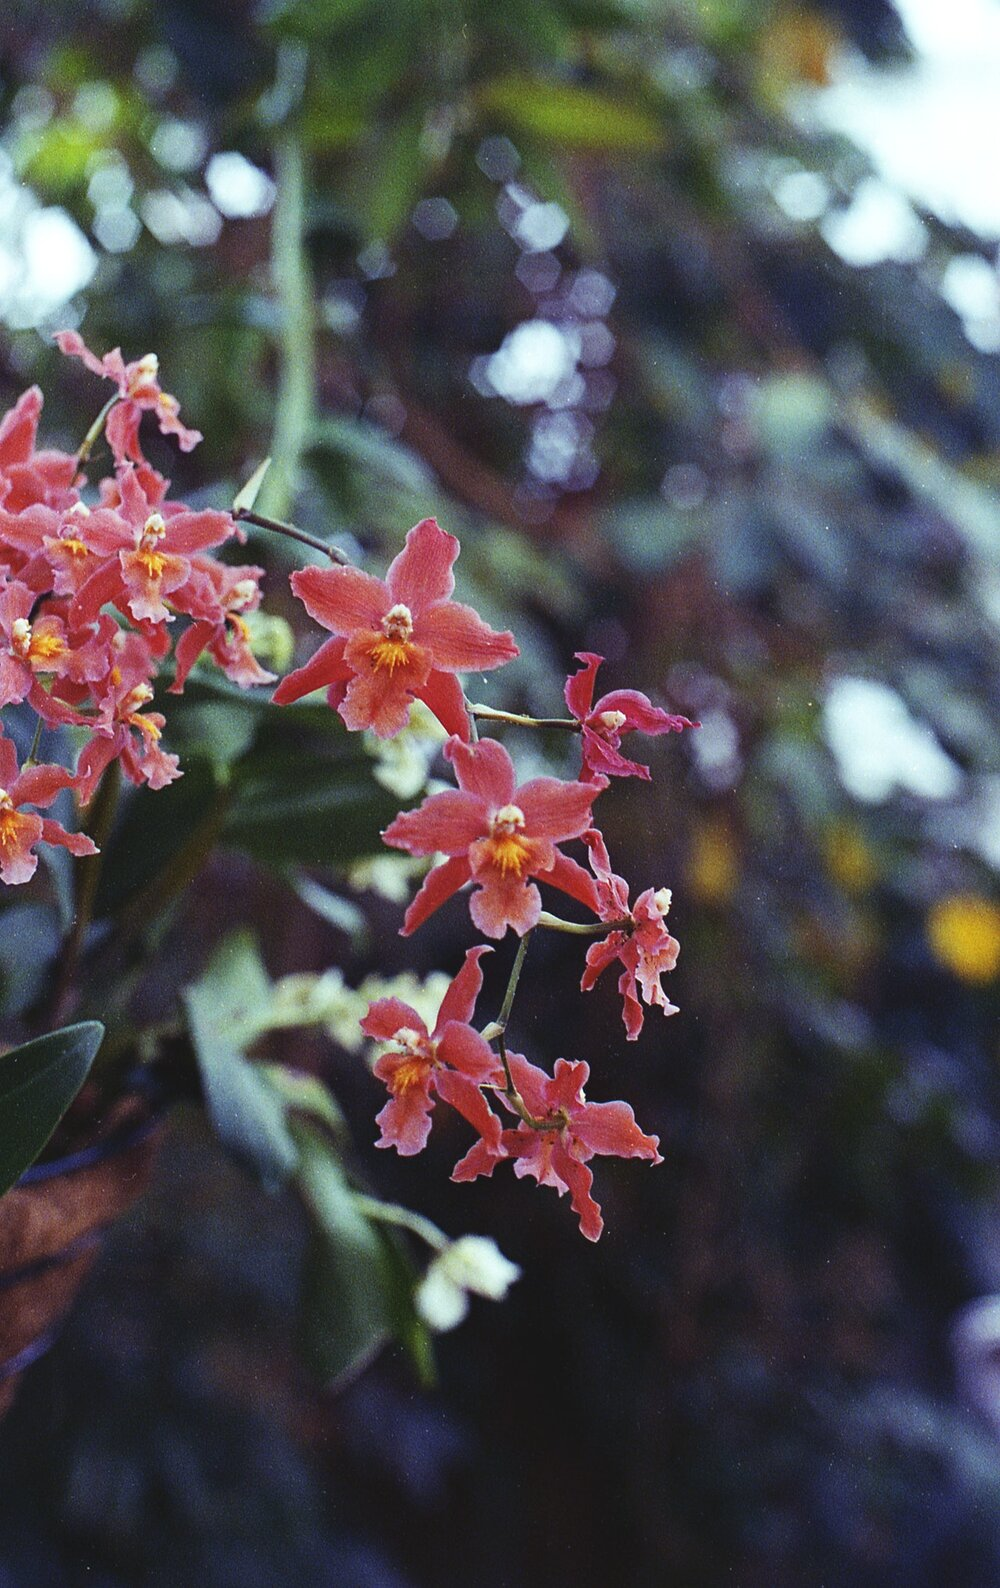 Photo of red orchids on a chain by Dred Geib from Pexels